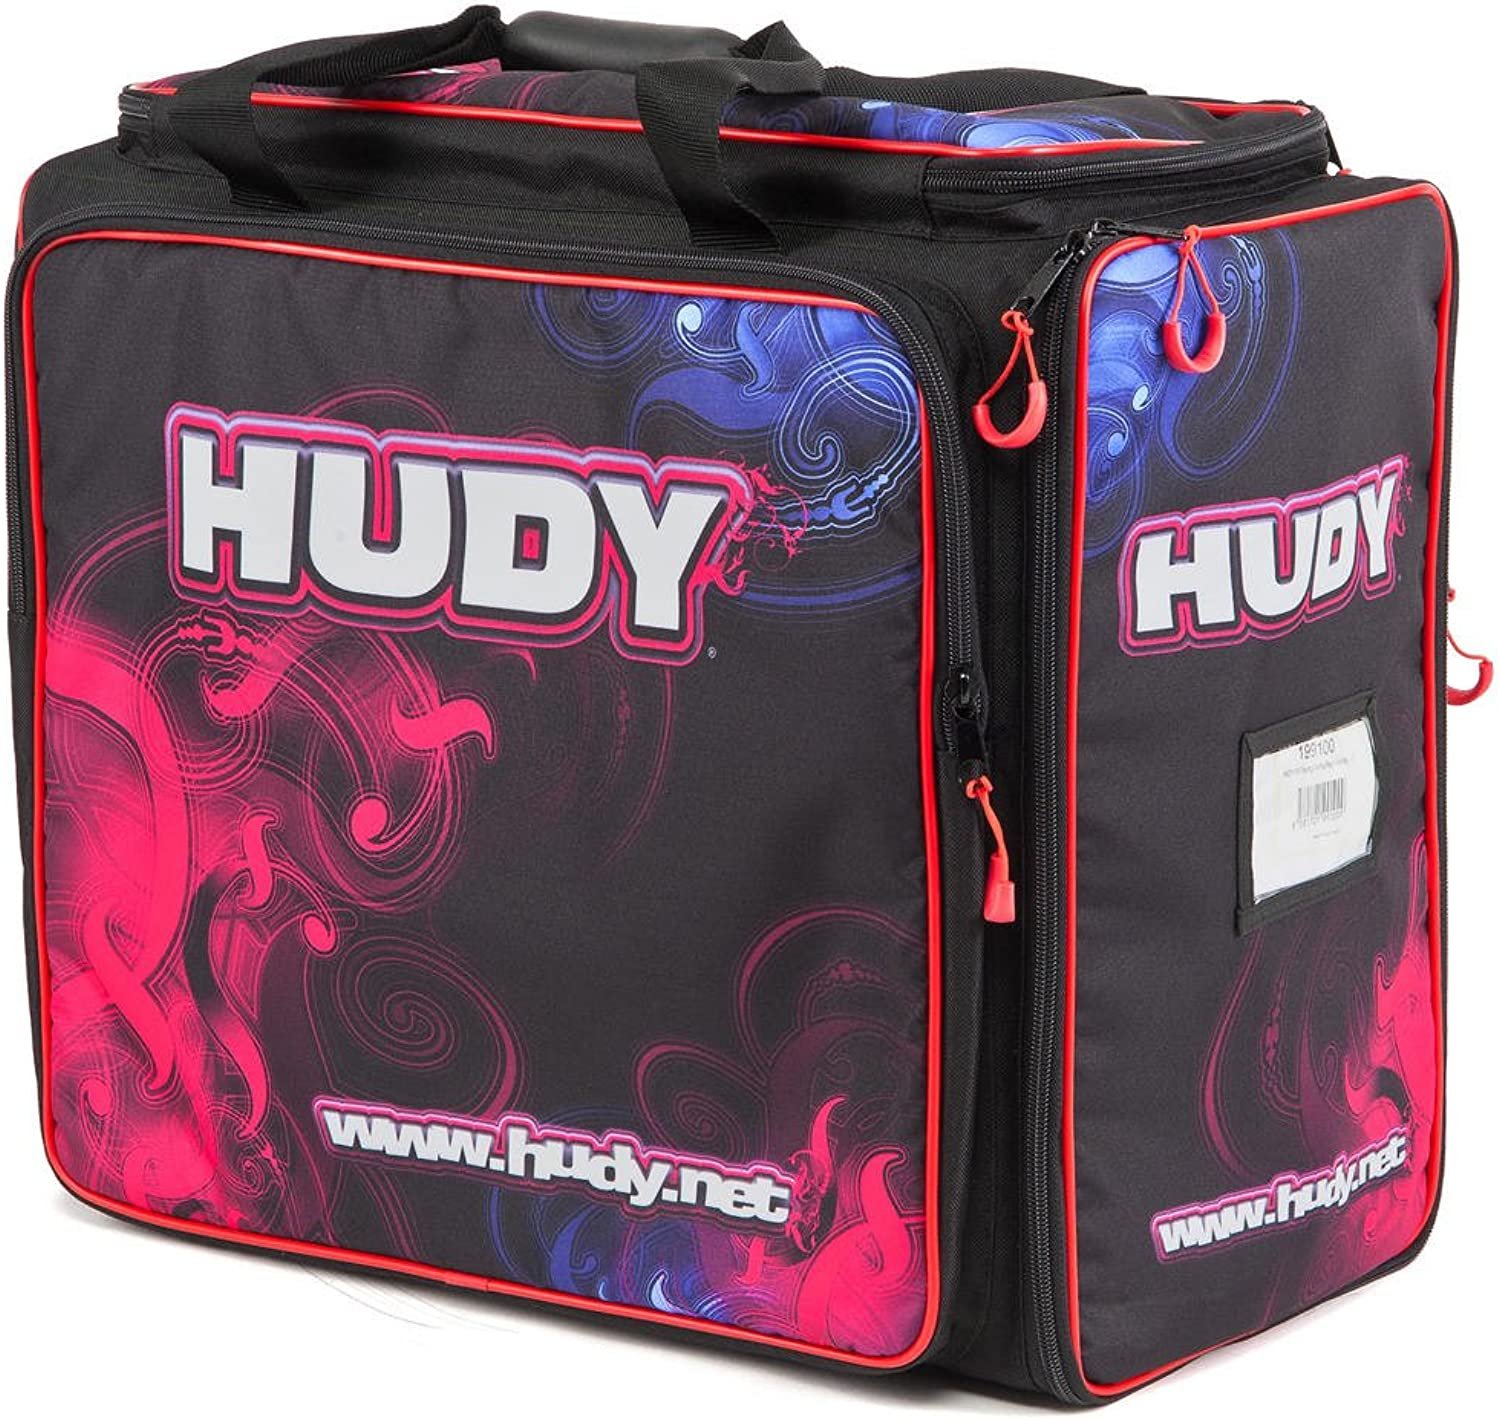 DY199100 - HUDY 1 10 TOURING CARRYING BAG + TOOL BAG - V2 - EXCLUSIVE EDITION   HUDY RC Car Performance Tools